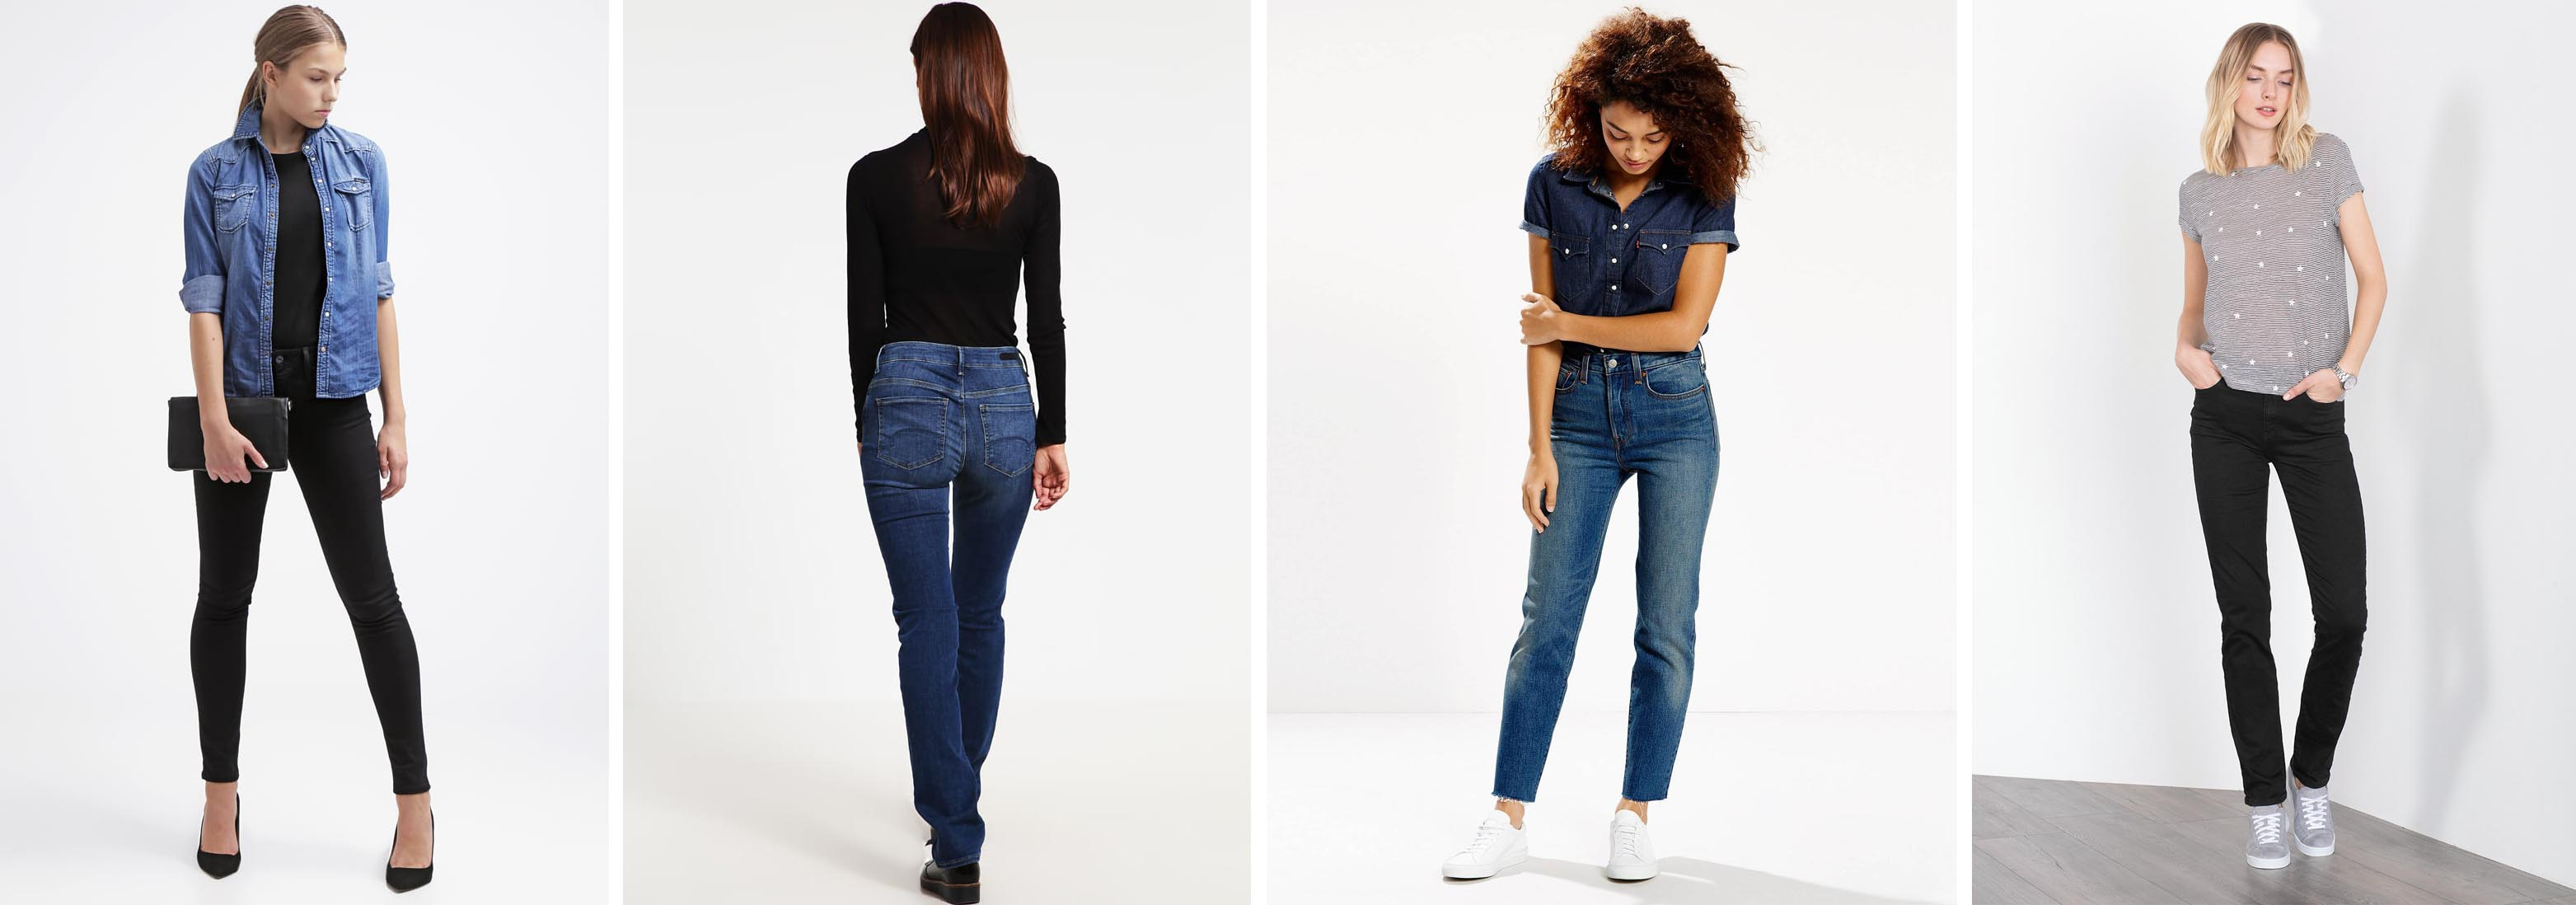 Shoppen: 19x voel je sexy in deze high-waist jeans